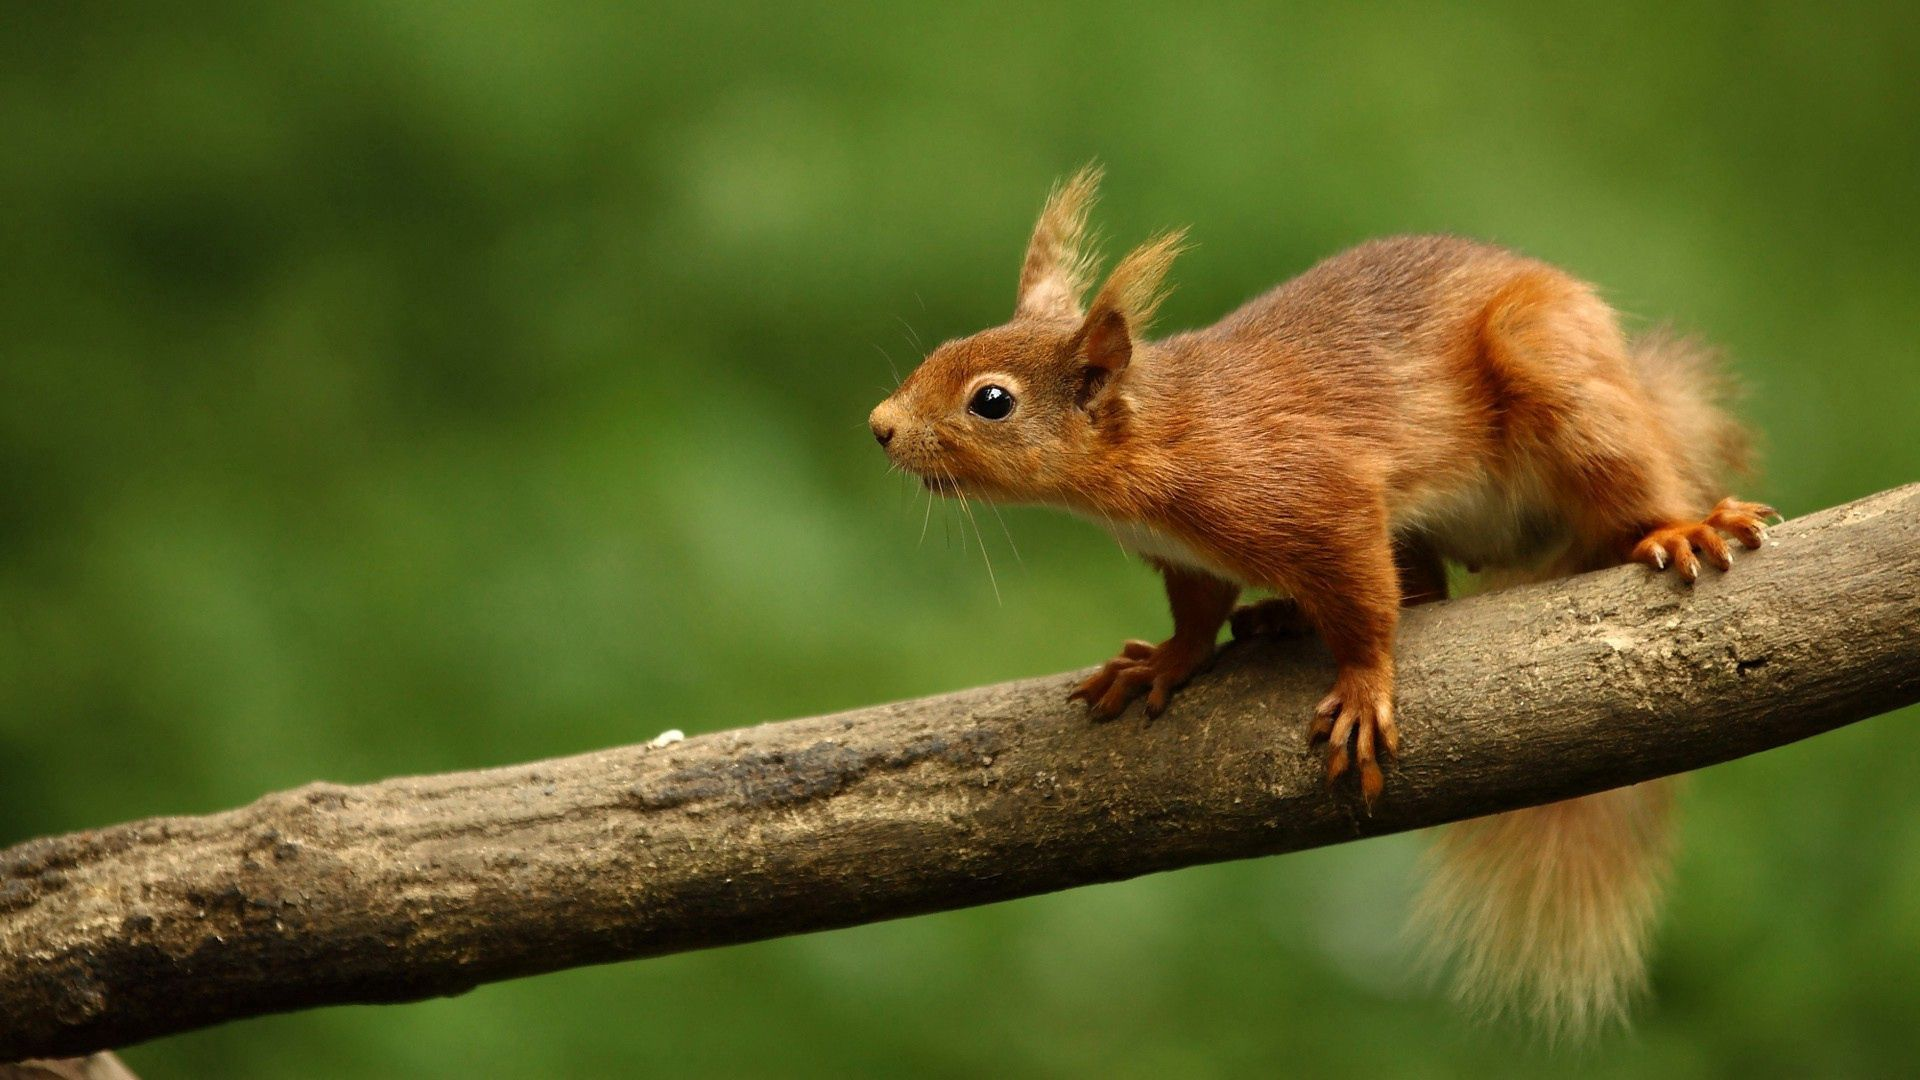 127851 Screensavers and Wallpapers Squirrel for phone. Download Animals, Squirrel, Animal, Curiosity pictures for free